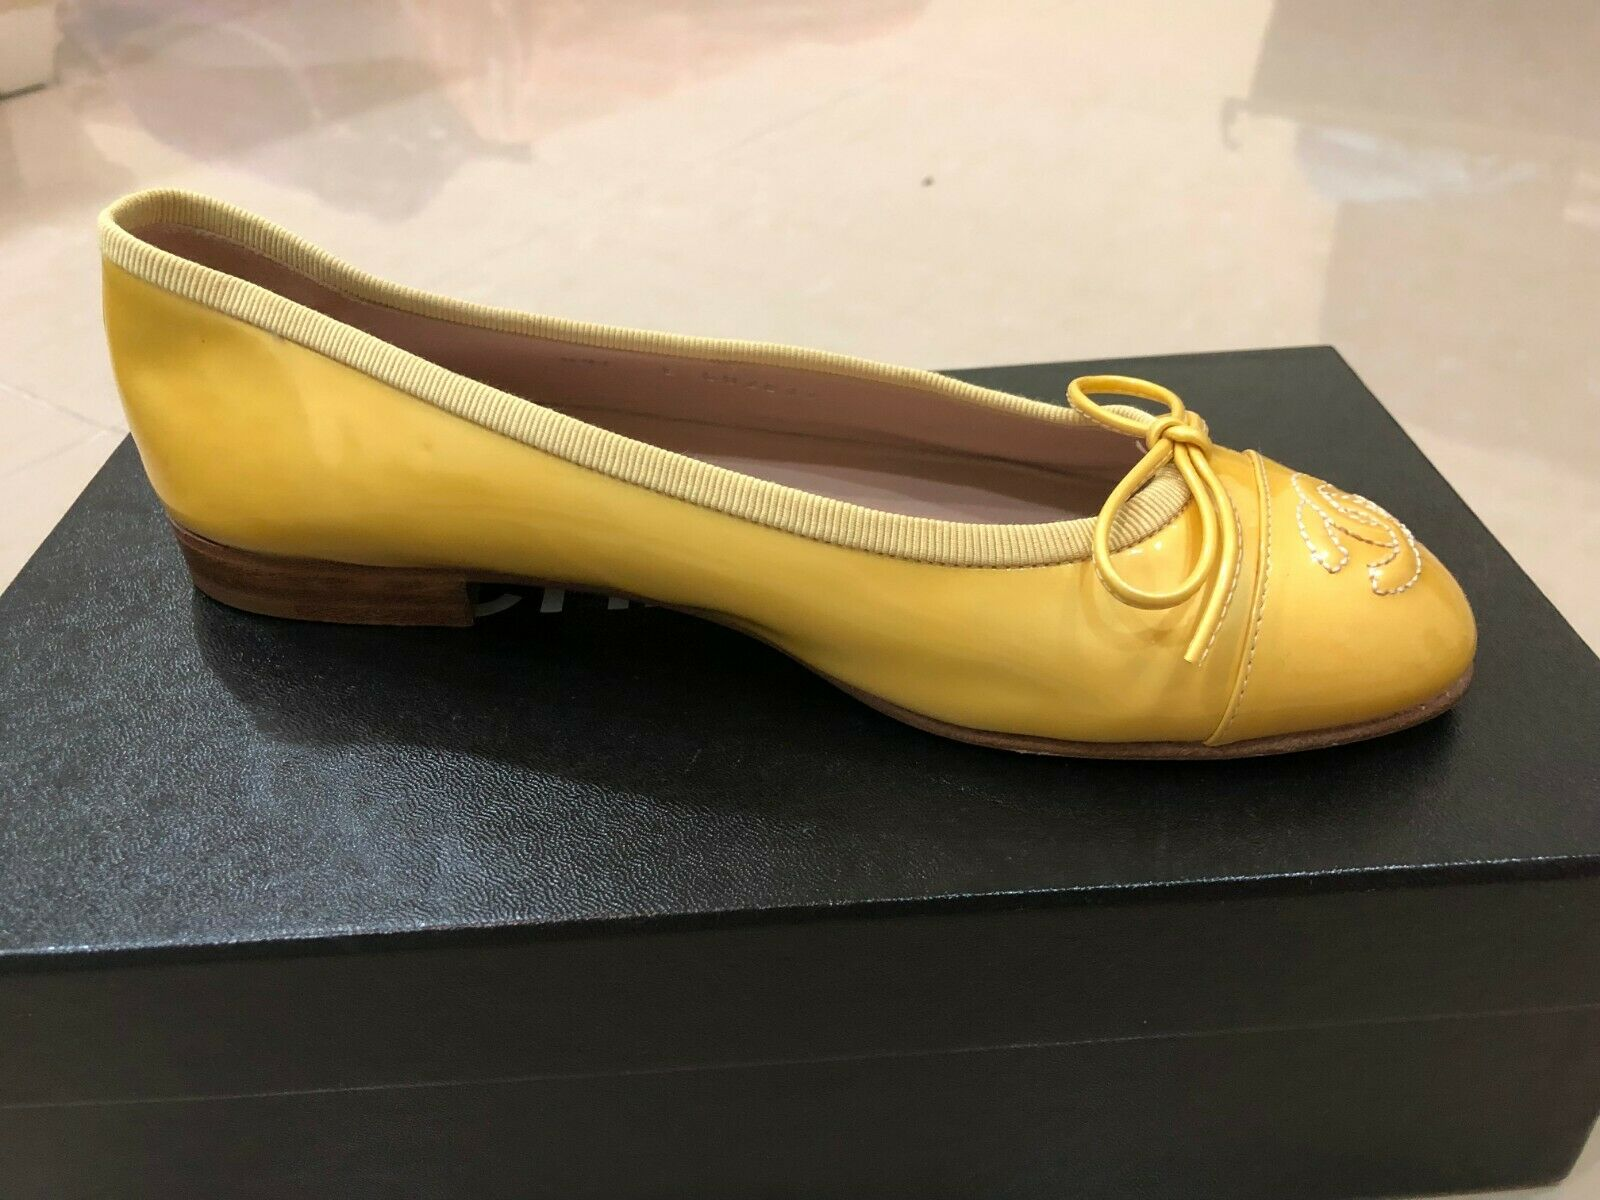 NIB CHANEL CC LOGO YELLOW PATENT BALLERINA CLASSIC SHOES EU 36 US 6 GORGEOUS